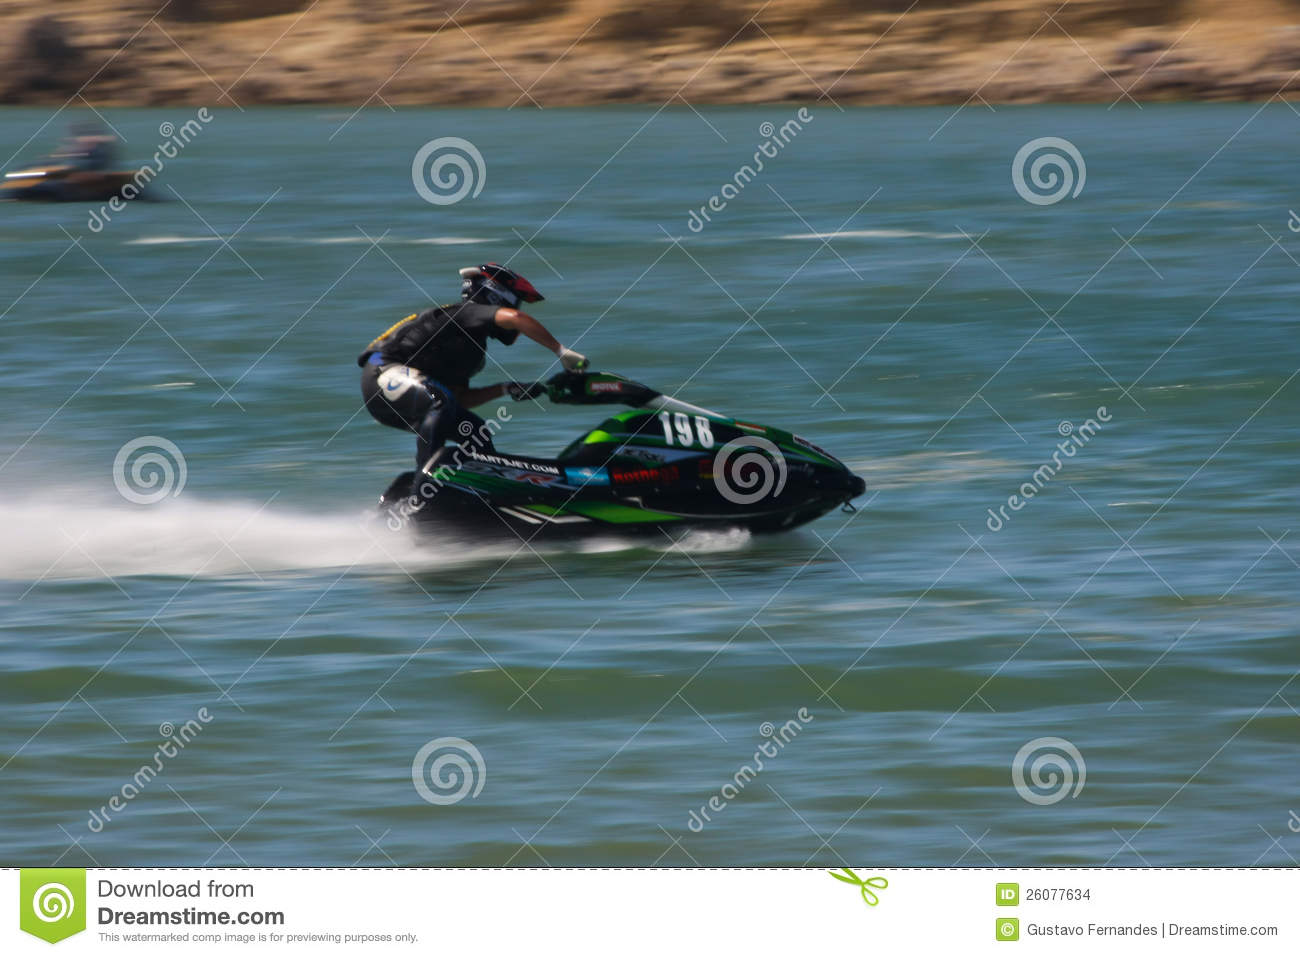 frederico gallego in 198 gran prix of jet ski editorial stock image image 26077634. Black Bedroom Furniture Sets. Home Design Ideas